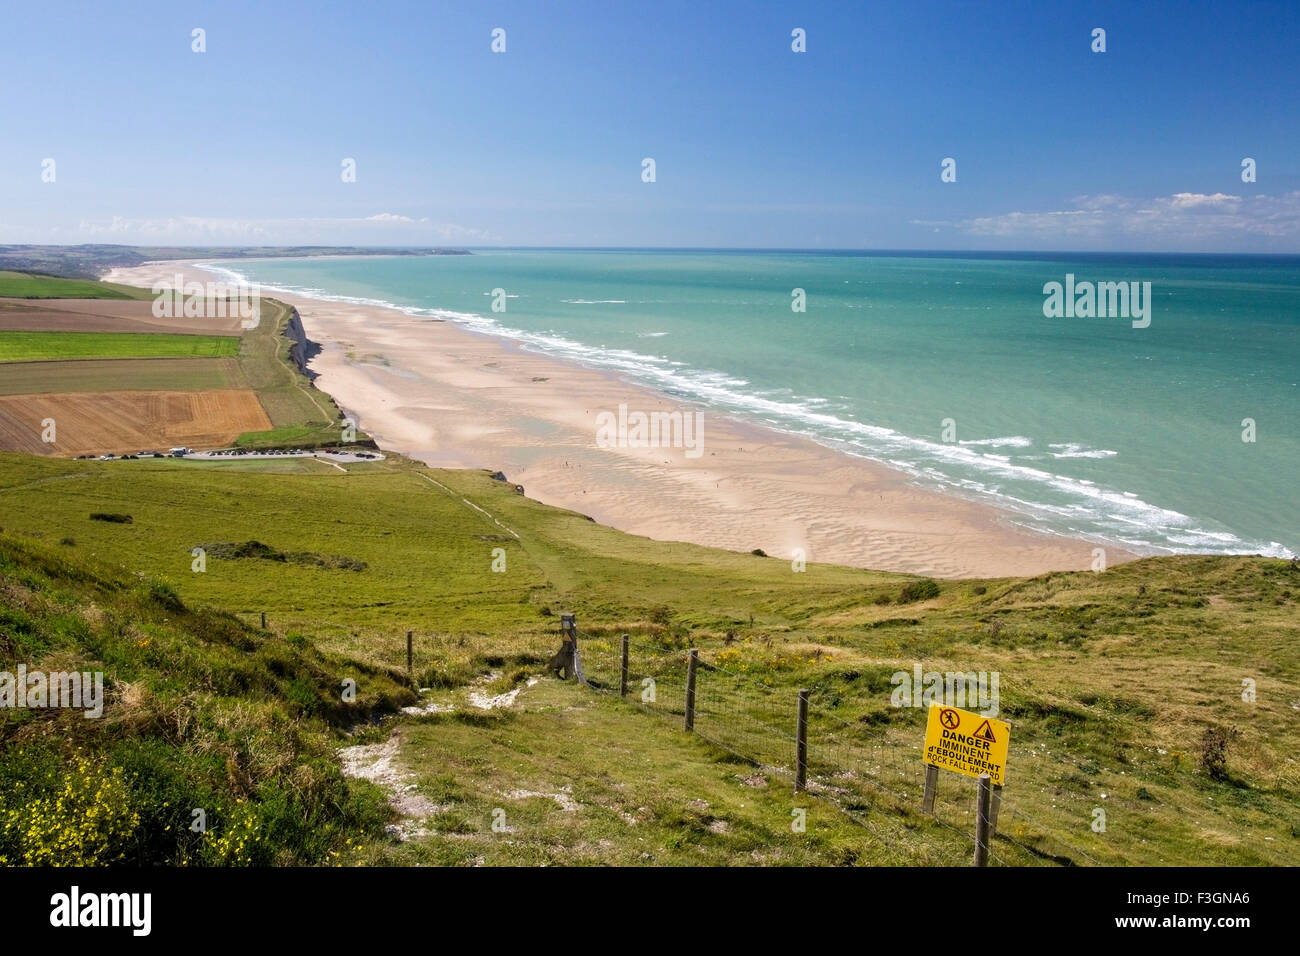 A view of the coastline near Calais, France looking west - Stock Image